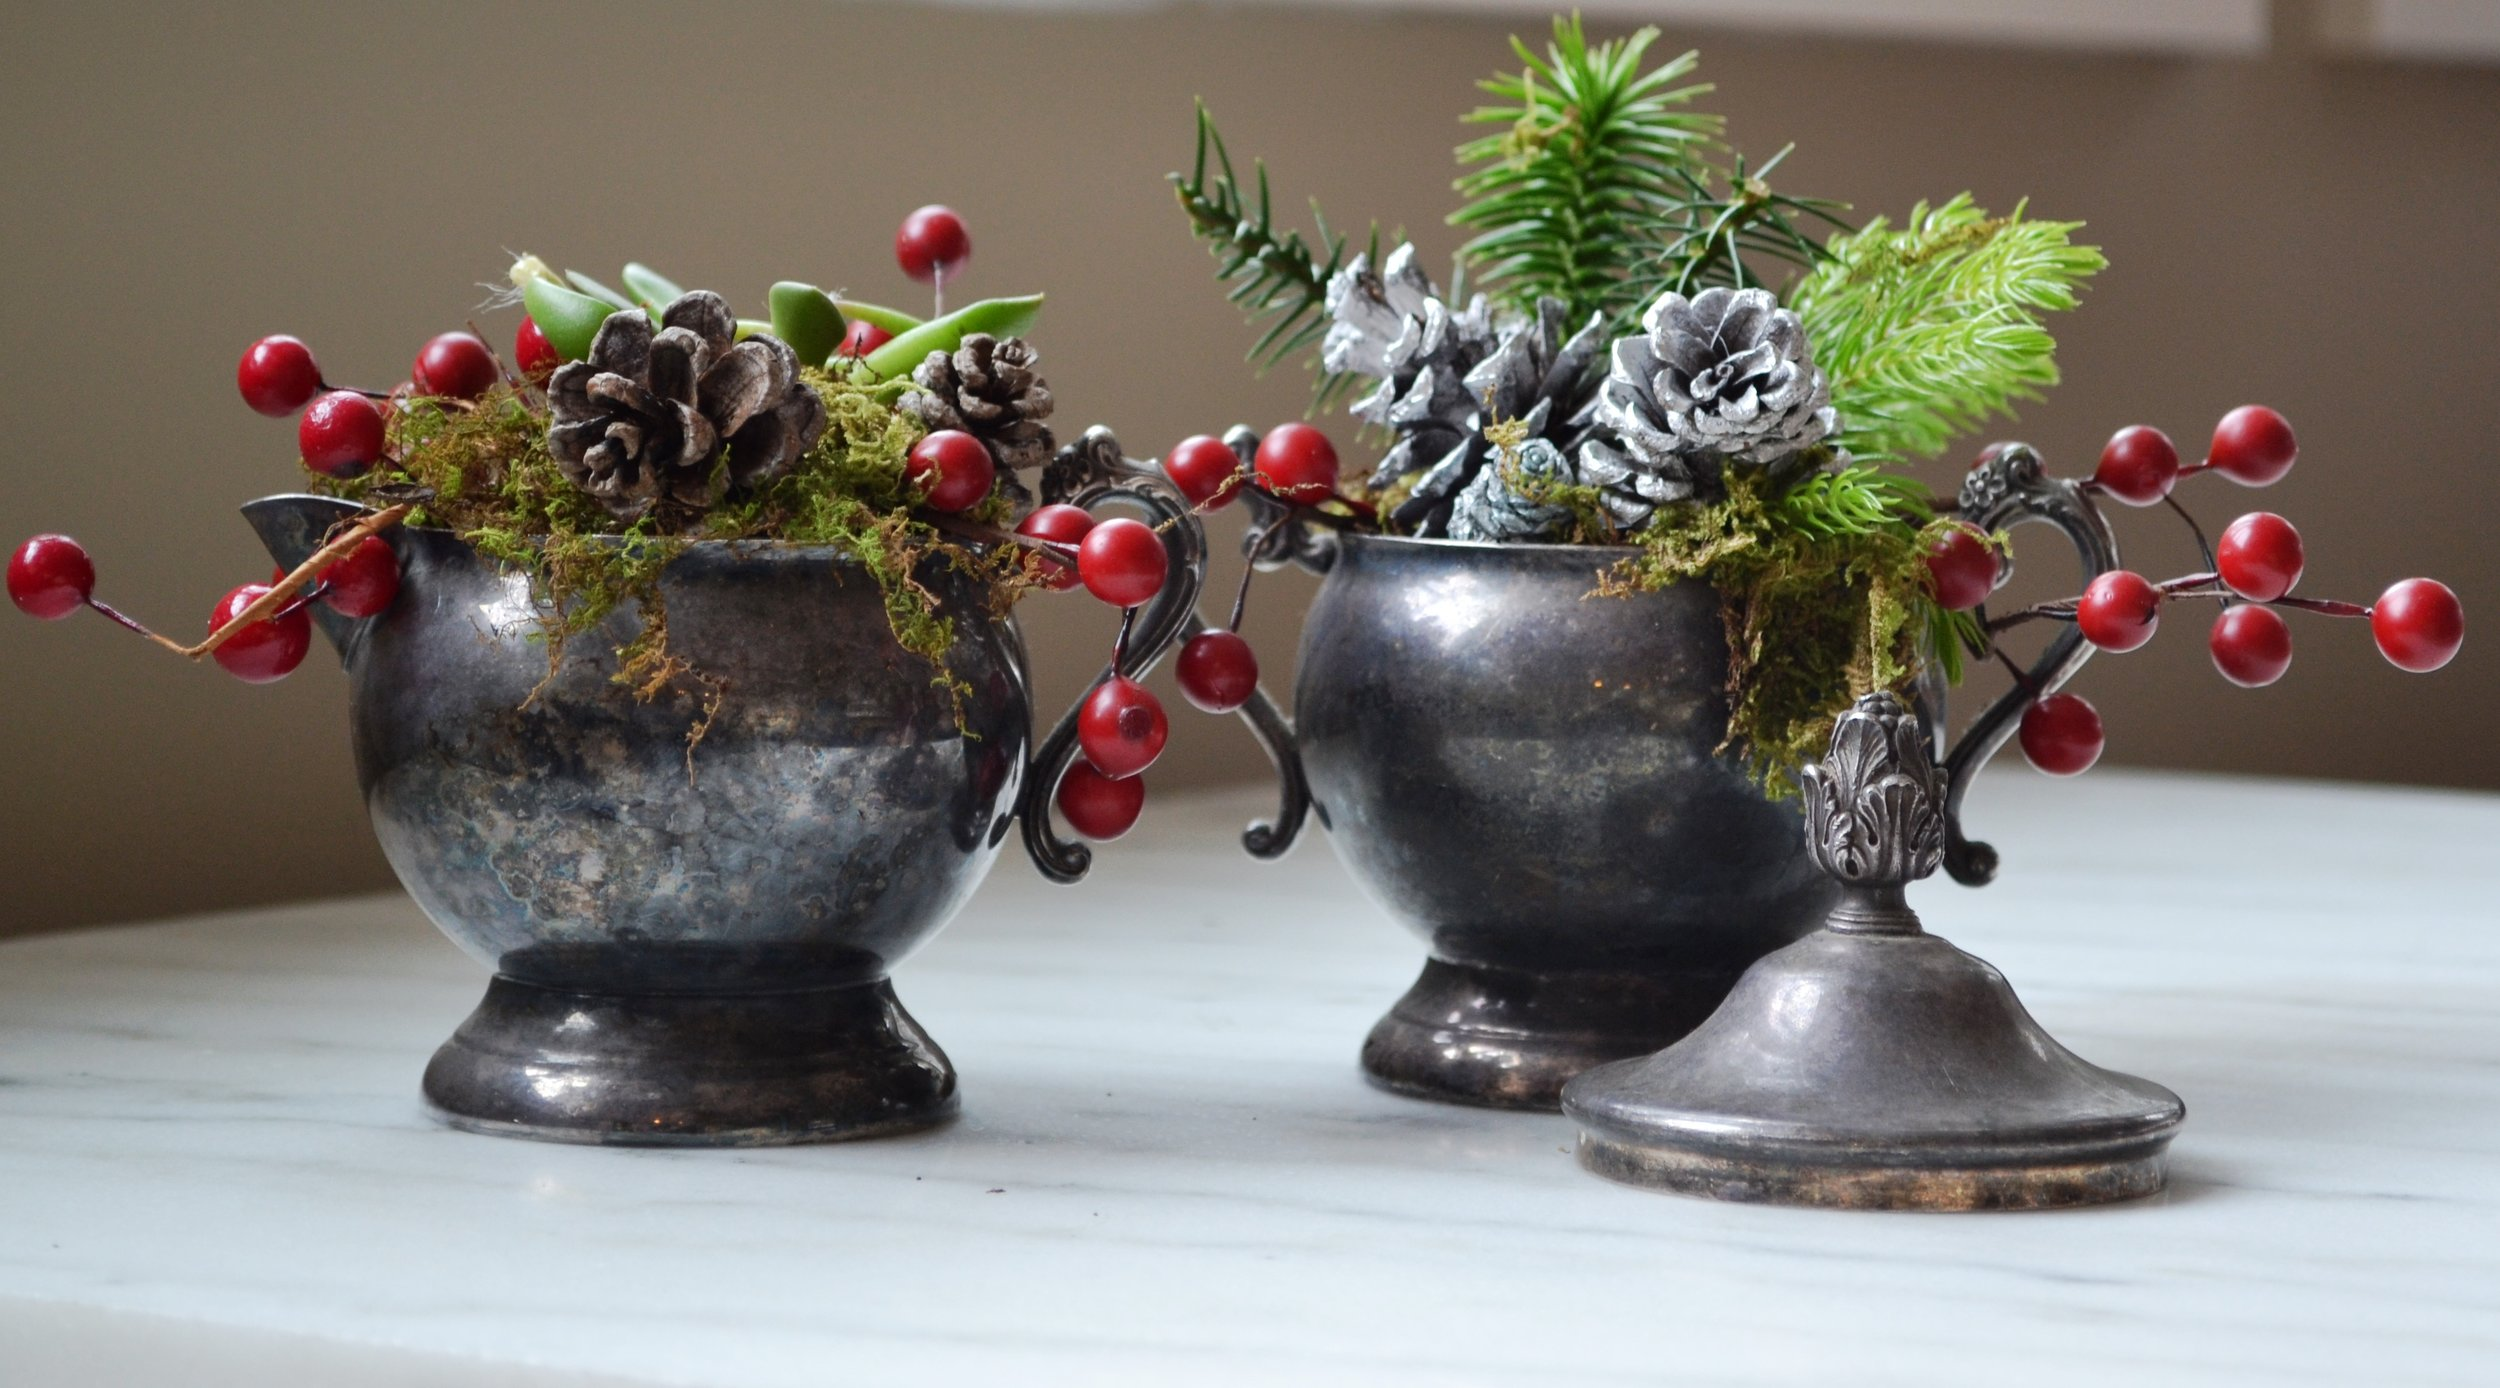 Another gallery of ideas.  DIY NETWORK 19 Rustic Easy Holiday  DIY's, like this vintage creamer and sugar set turned into mini holiday planters.